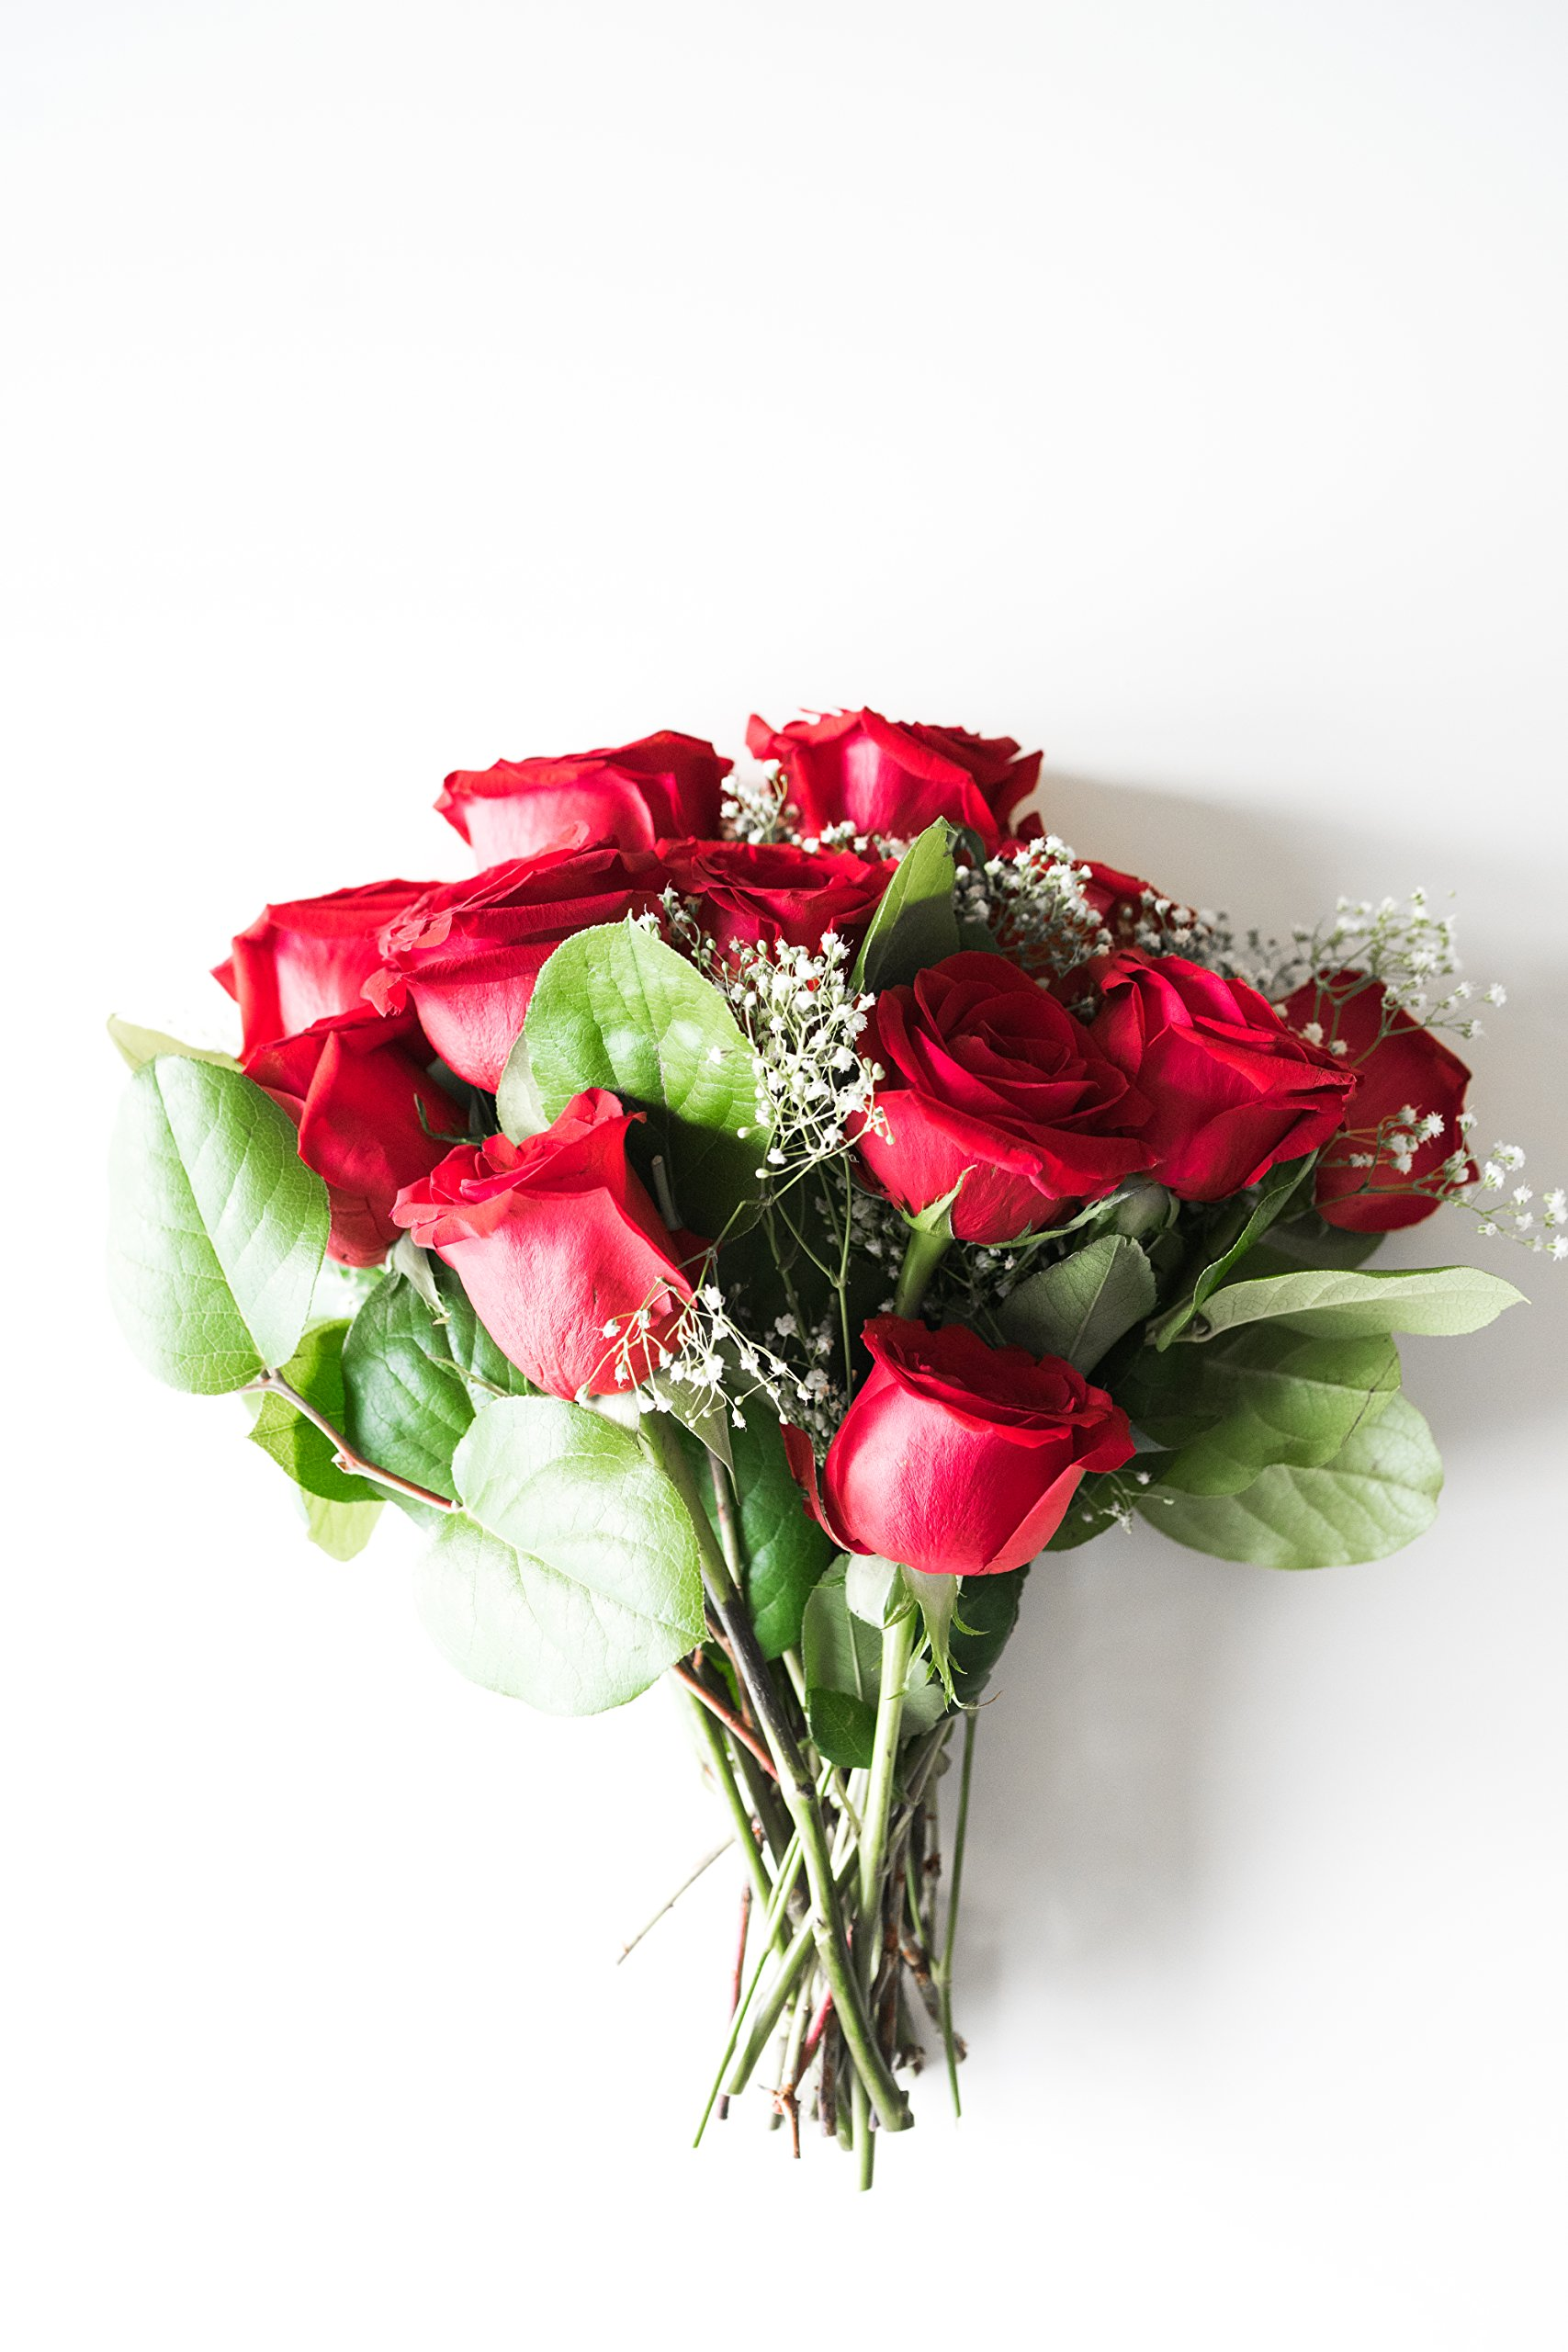 Flowers - One Dozen Long Stemmed Red Roses (Free Vase Included) by From You Flowers (Image #6)